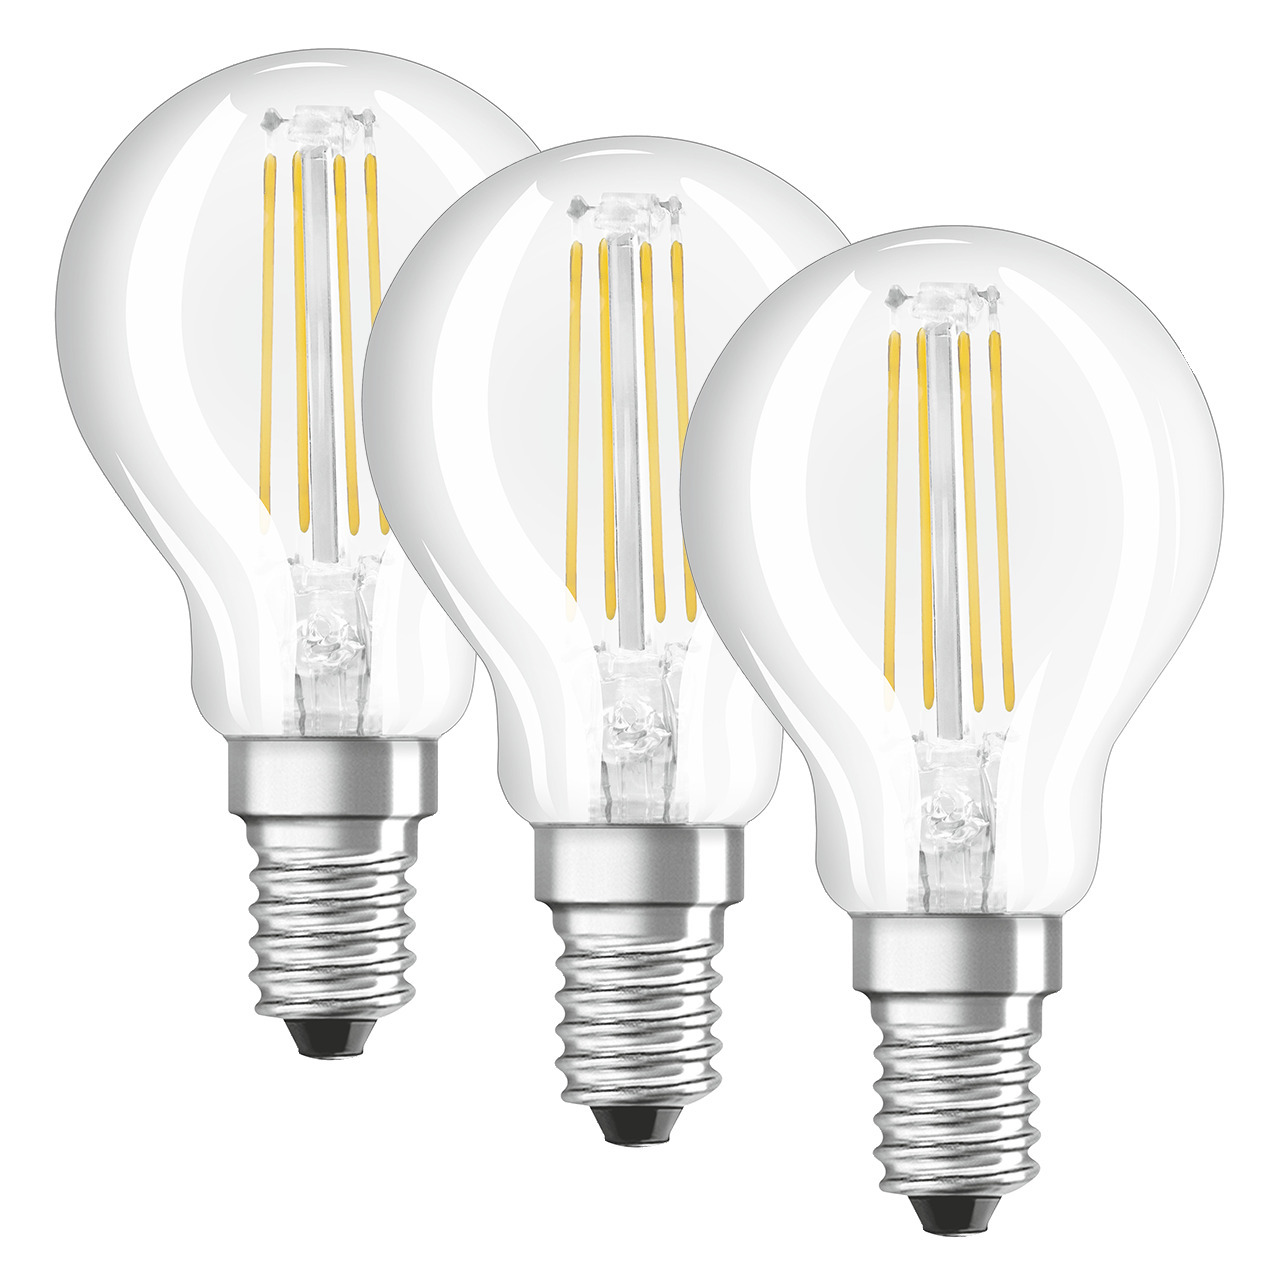 OSRAM LED PROMO 3er Set 4-W-Filament-LED-Tropfenlampe E14- warmweiss- klar